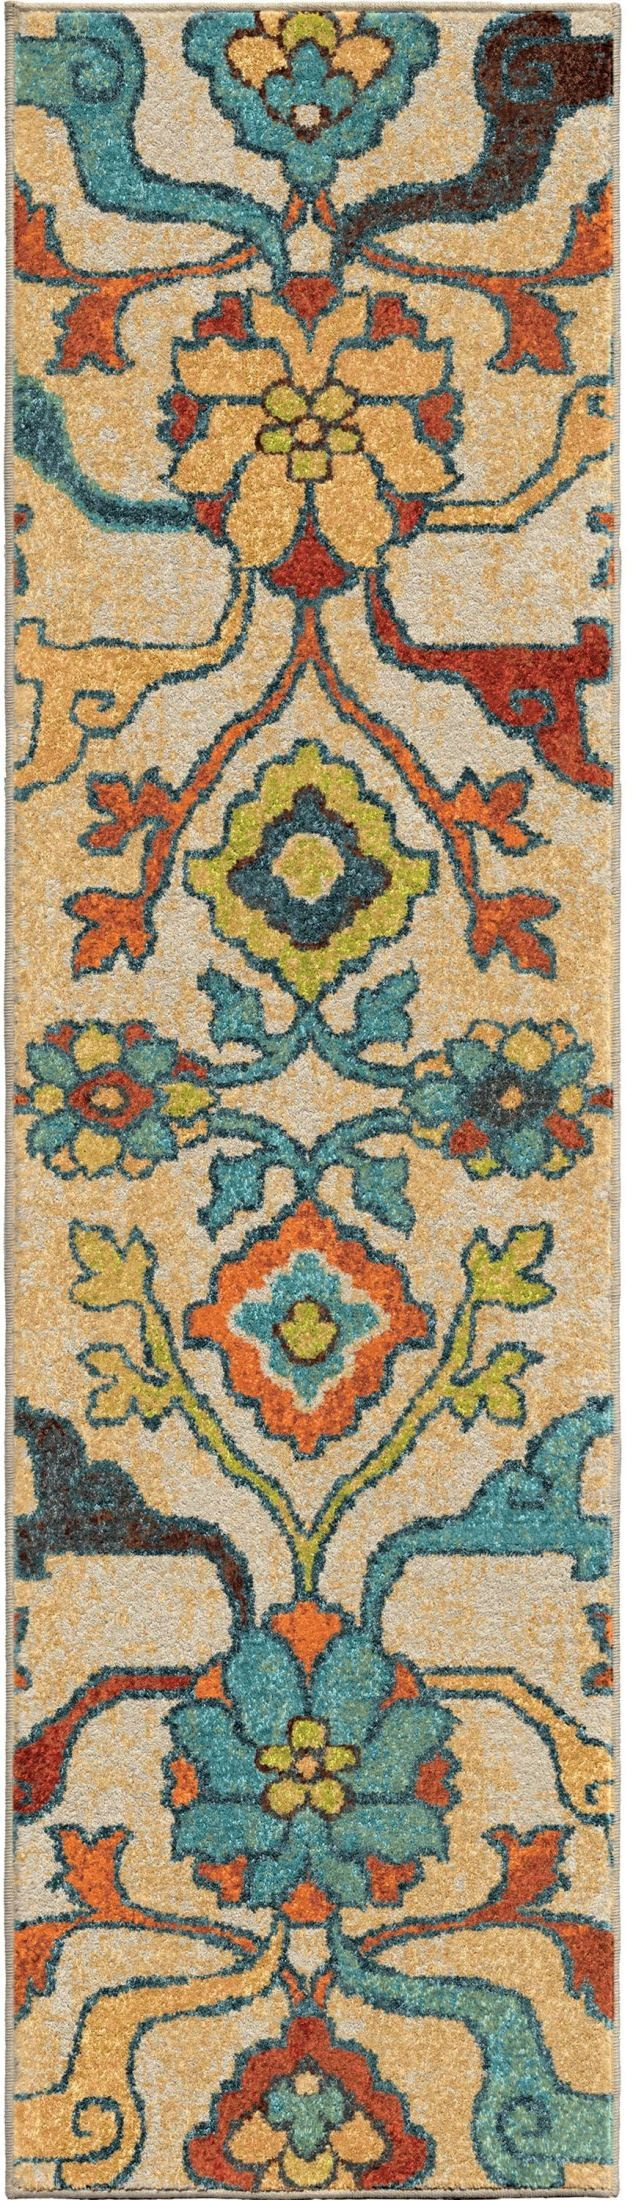 Spoleto bright color floral tibet multi runner rug from for Bright floral area rugs